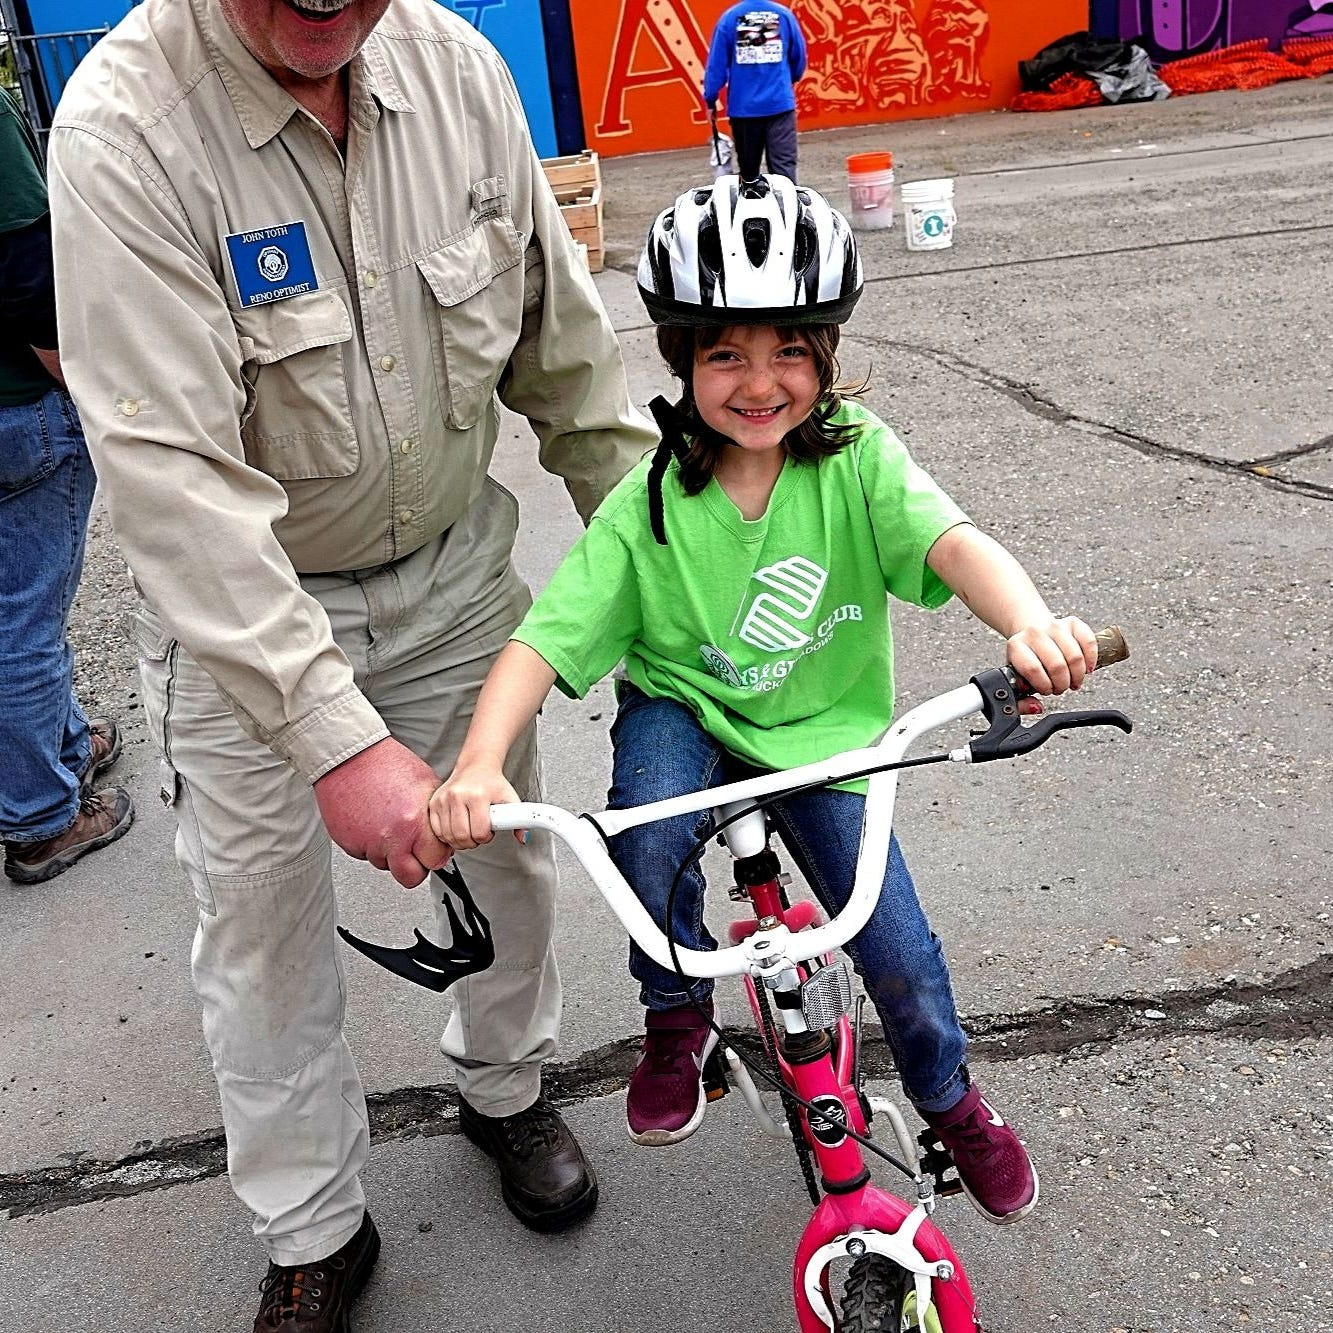 'A need for bike safety': Reno police, firefighters teach kids the rules of the road